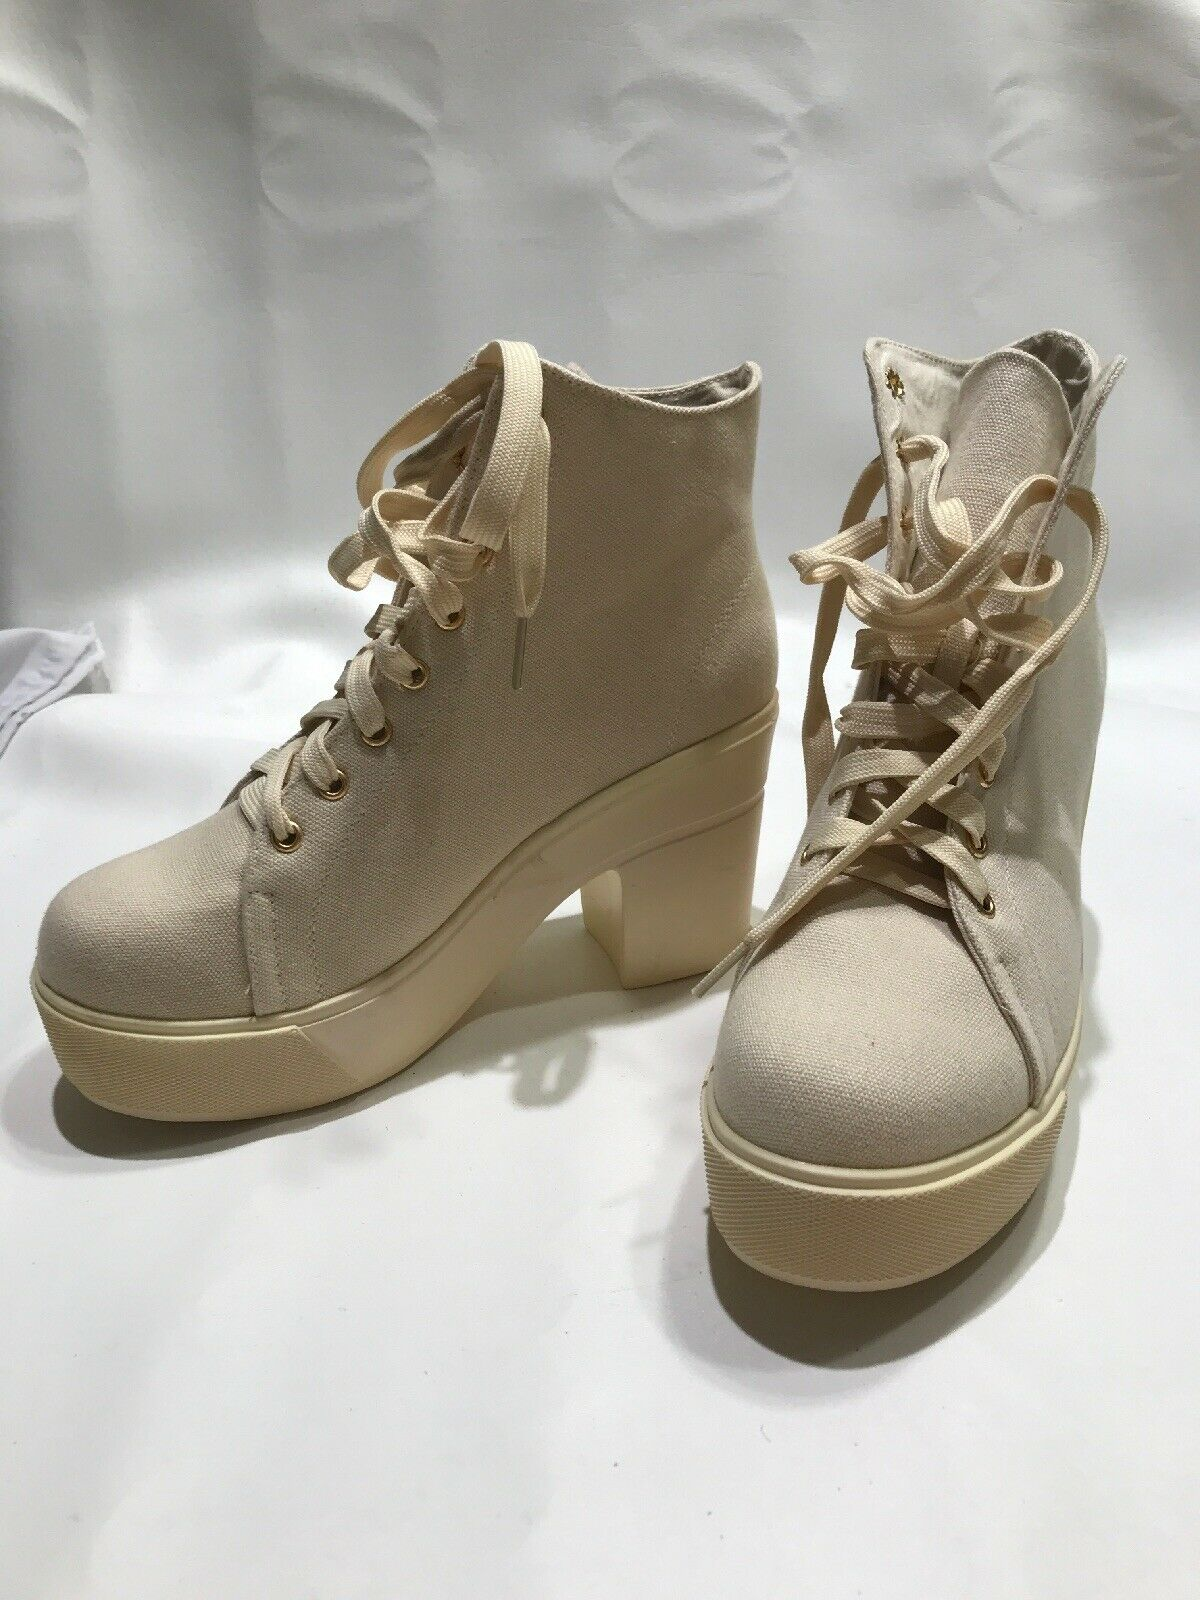 Dirty Laundry Platform High Top zapatillas campus Queen 39 8.5 Beige Lona 40 9.5